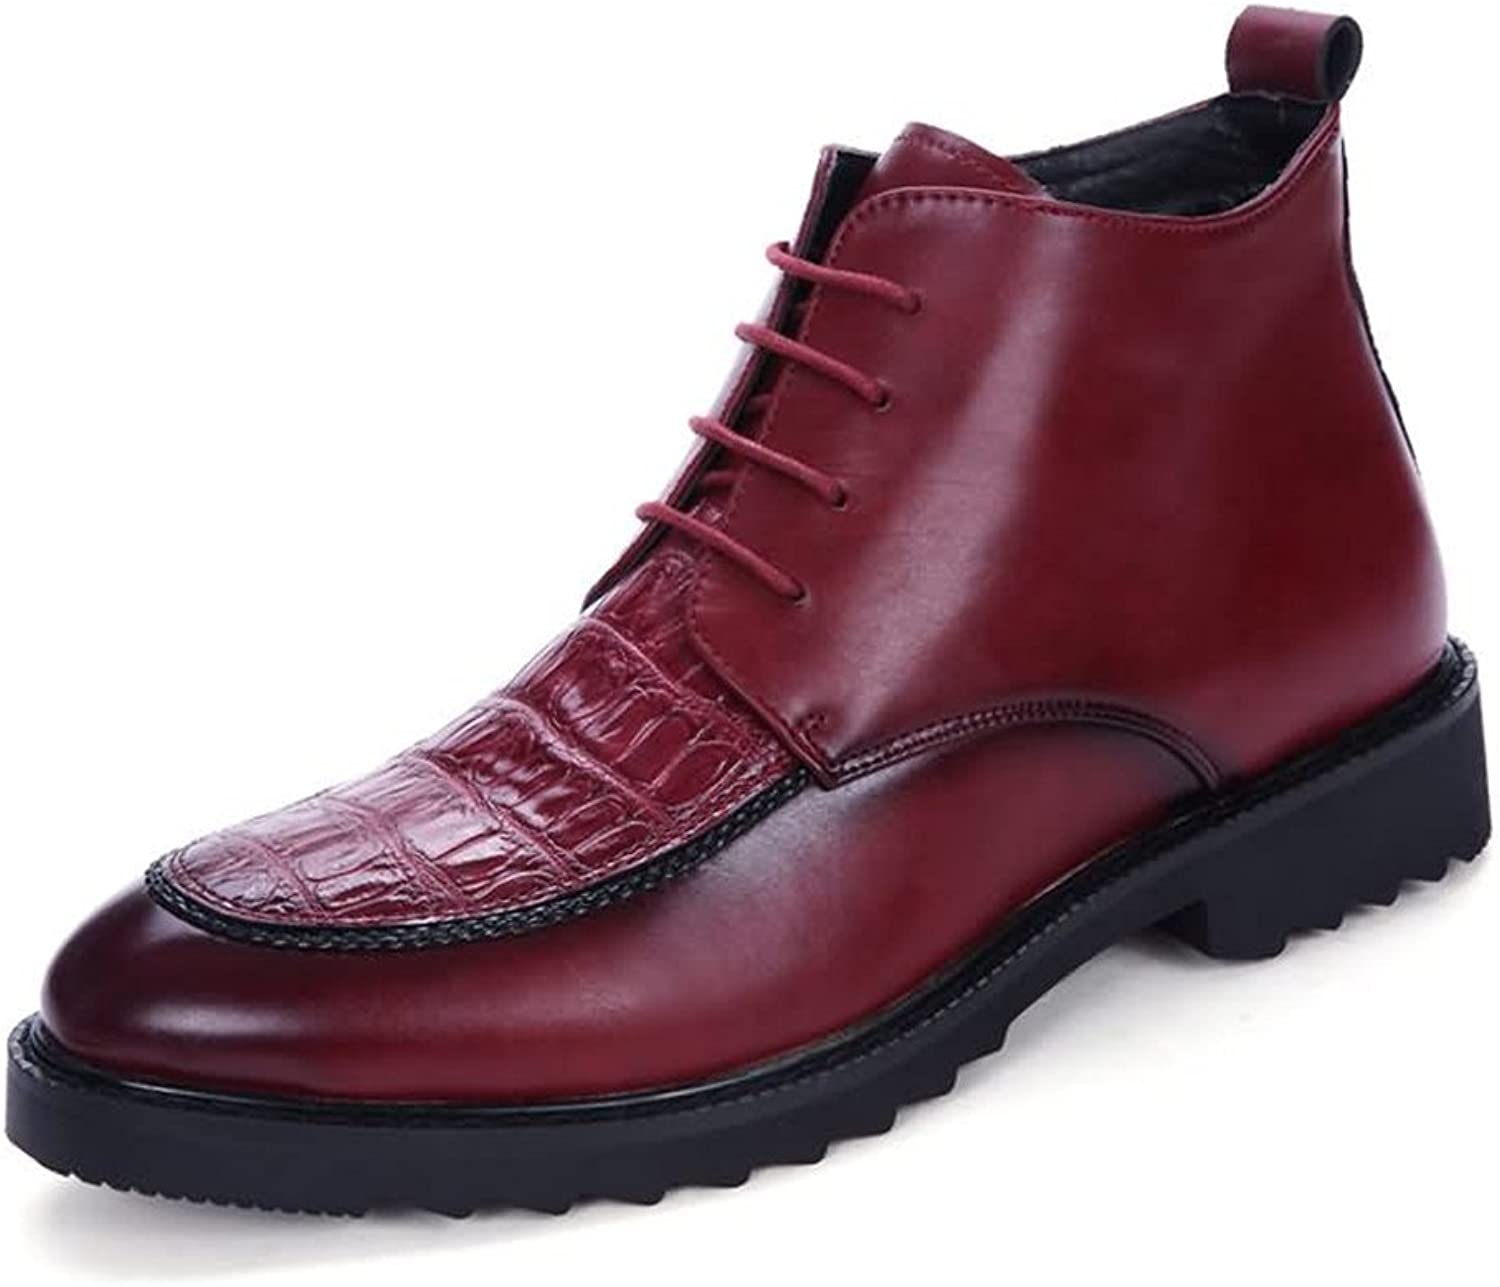 Men's Ankle Boots Flate Heel Pointed Toe Leisure and Fashion PU Leather Lace Up shoes (color   Red, Size   6.5MUS)